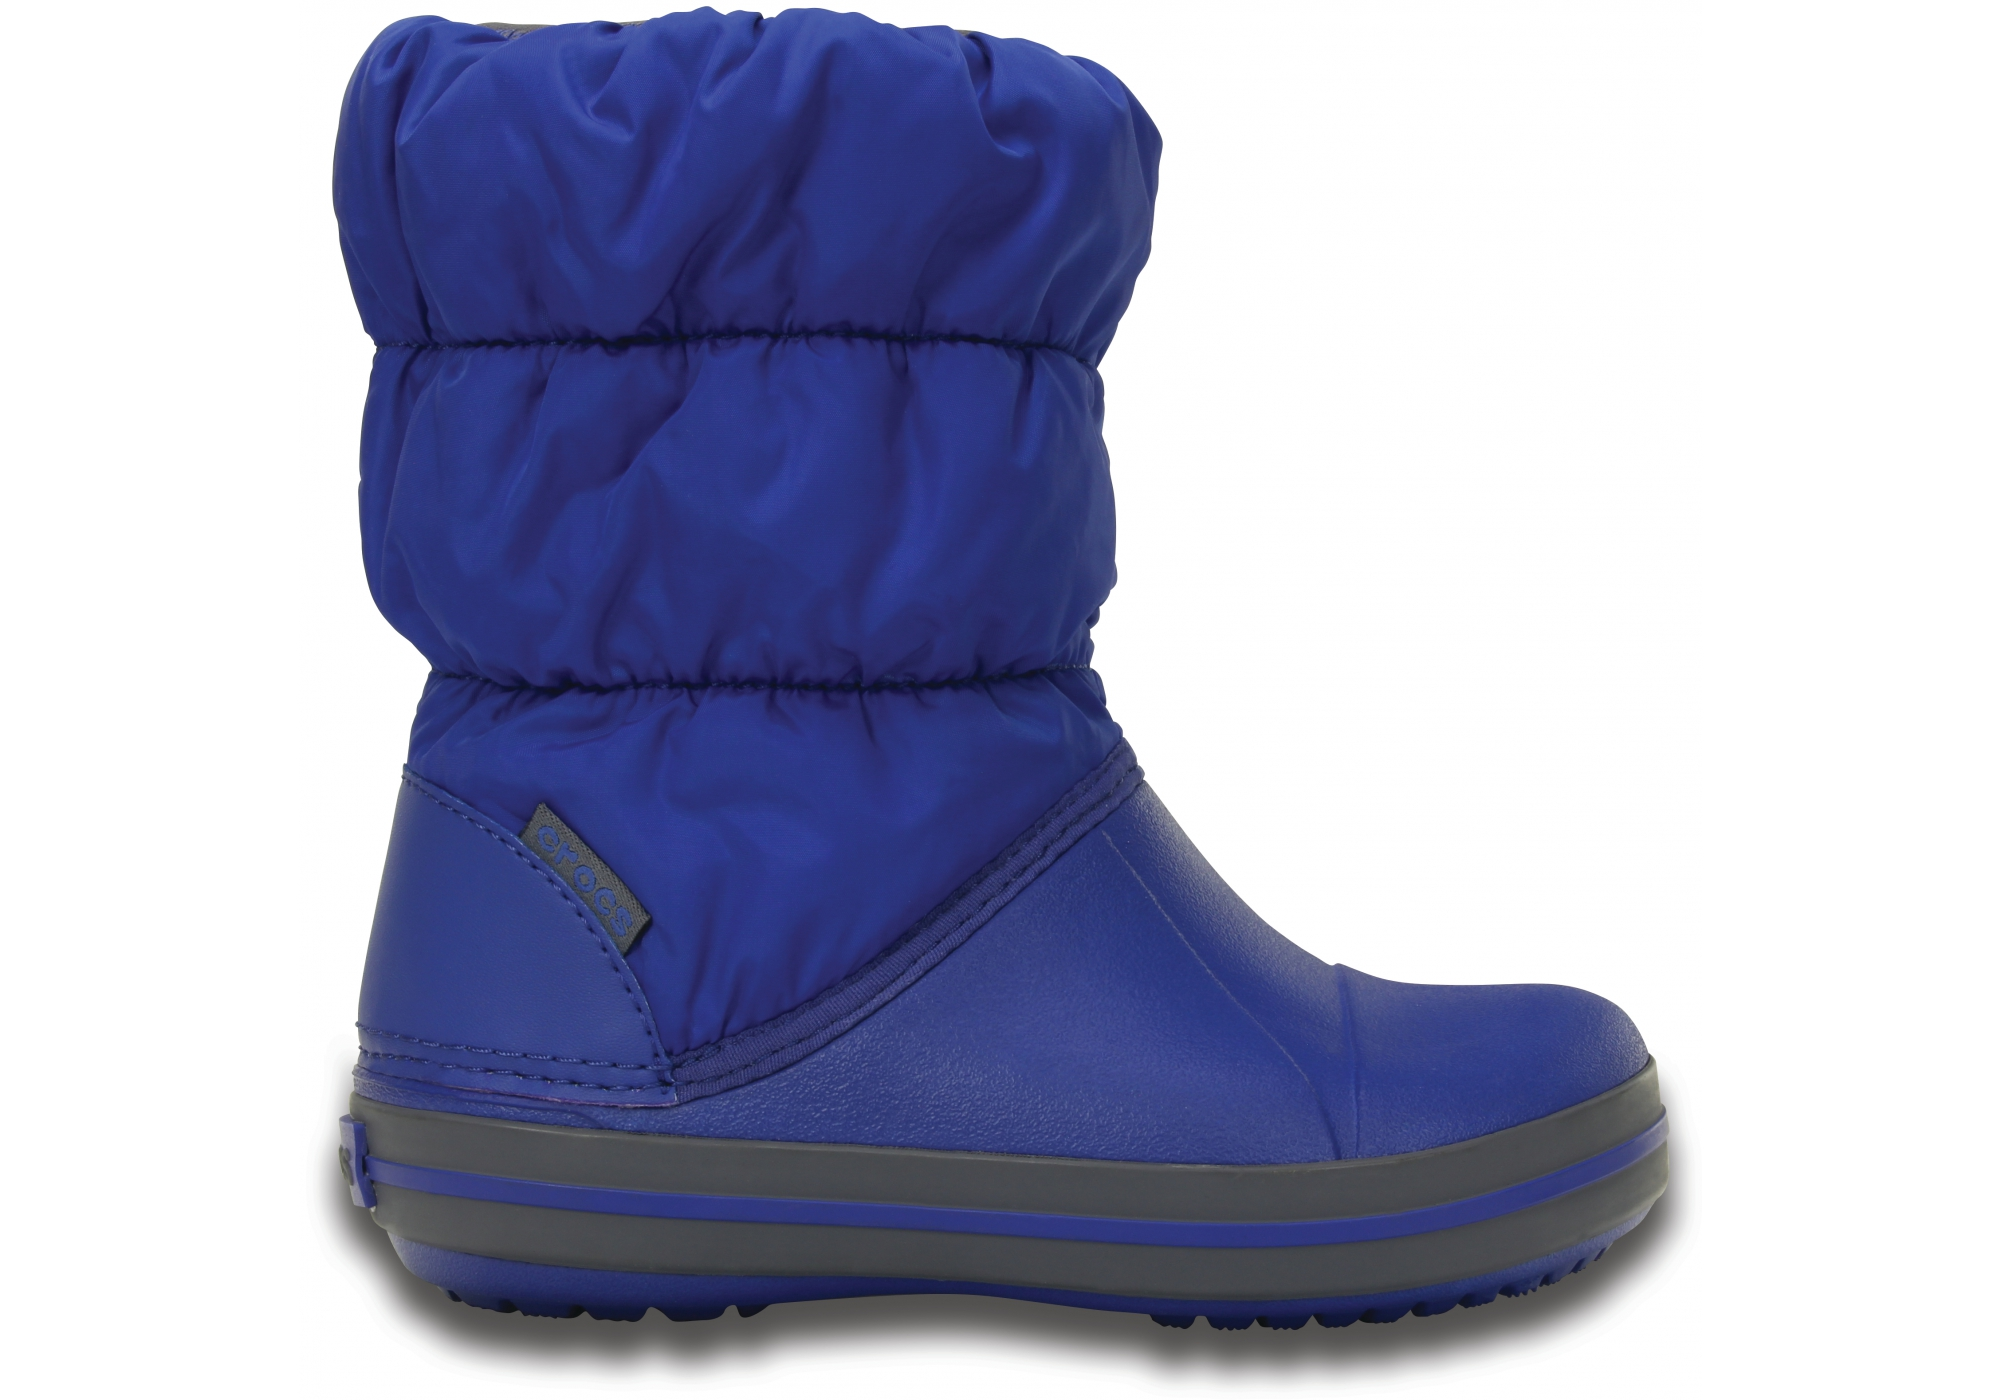 Crocs modré sněhule Winter Puff Boot Kids Cerulean Blue - C8